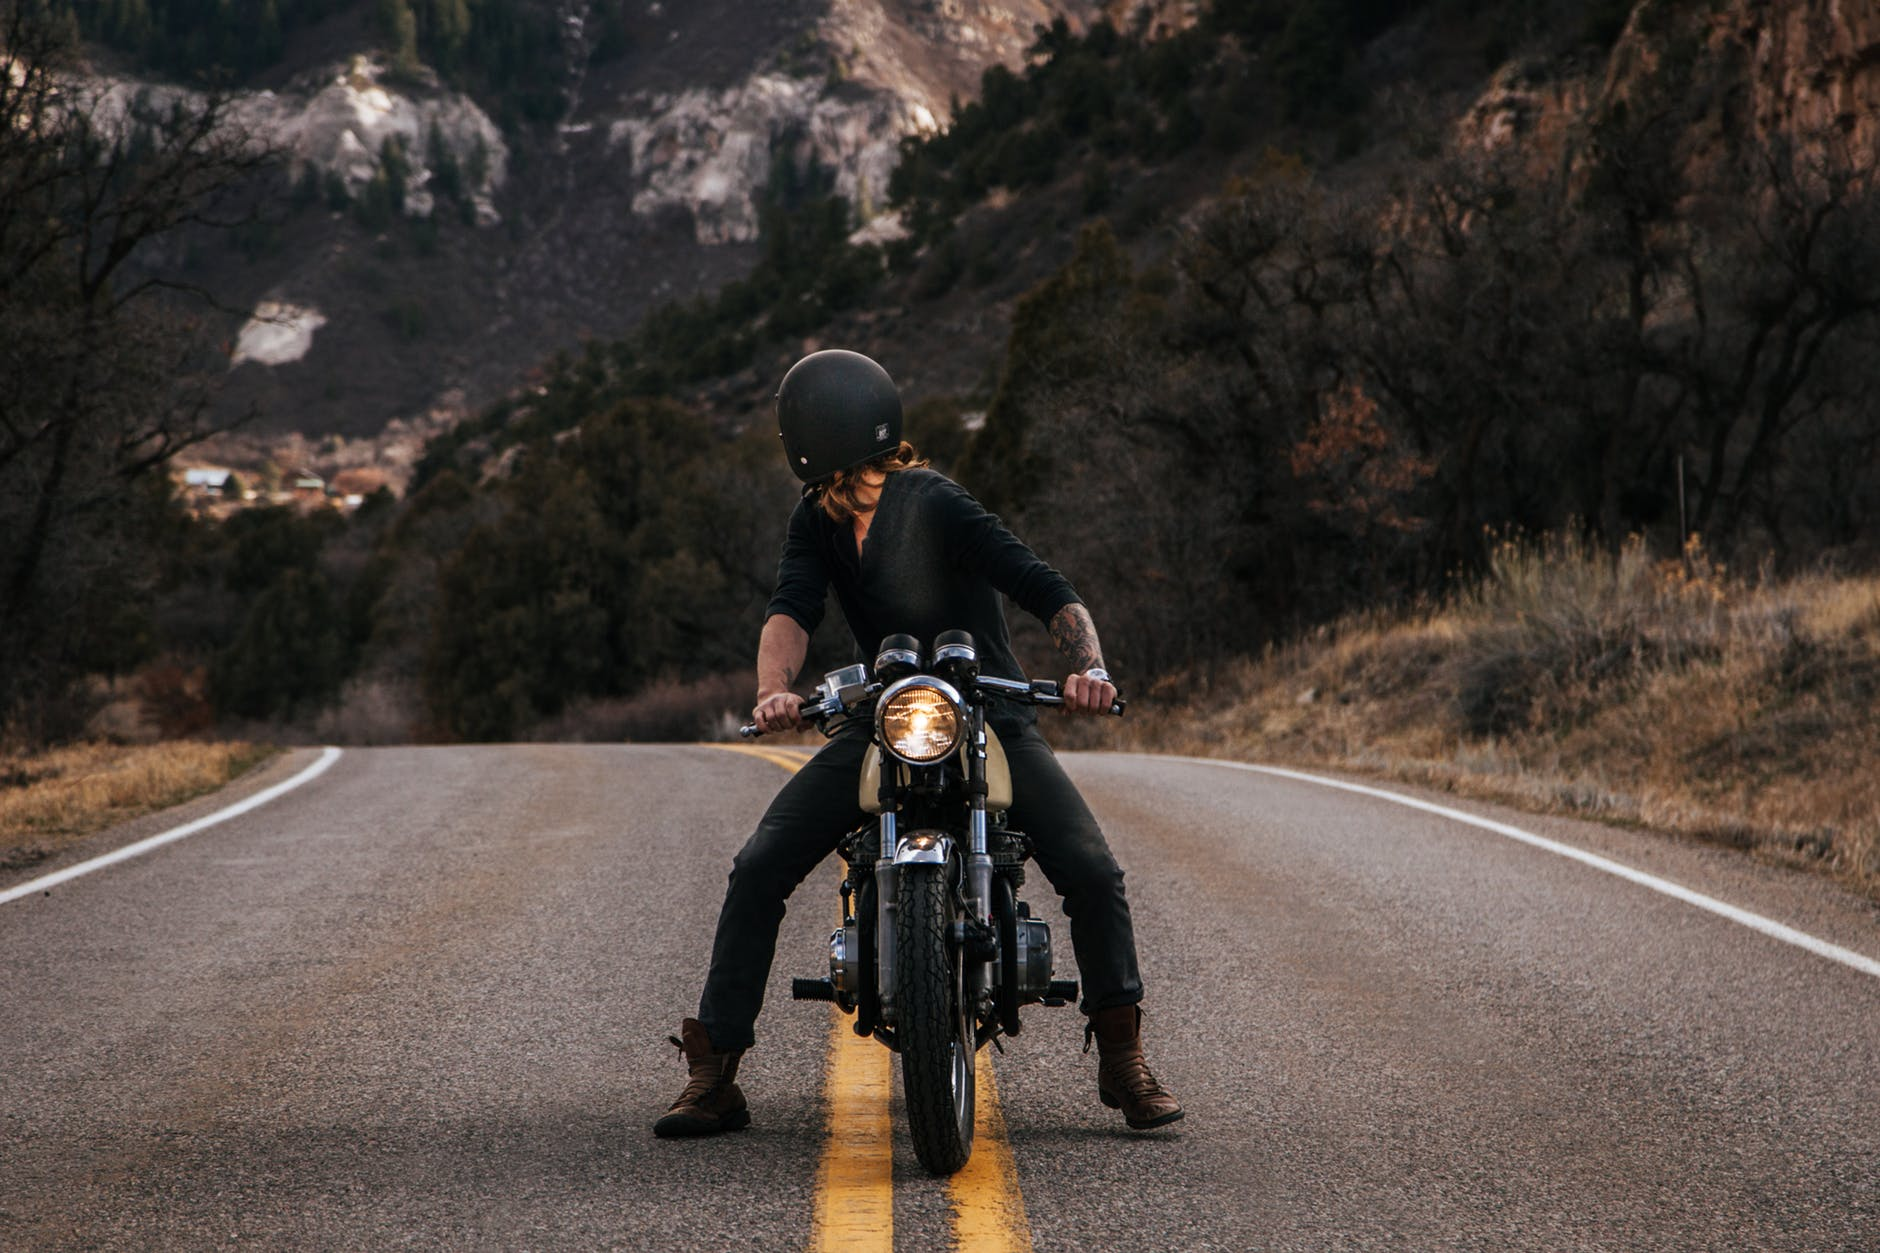 man riding boxer motorcycle on road